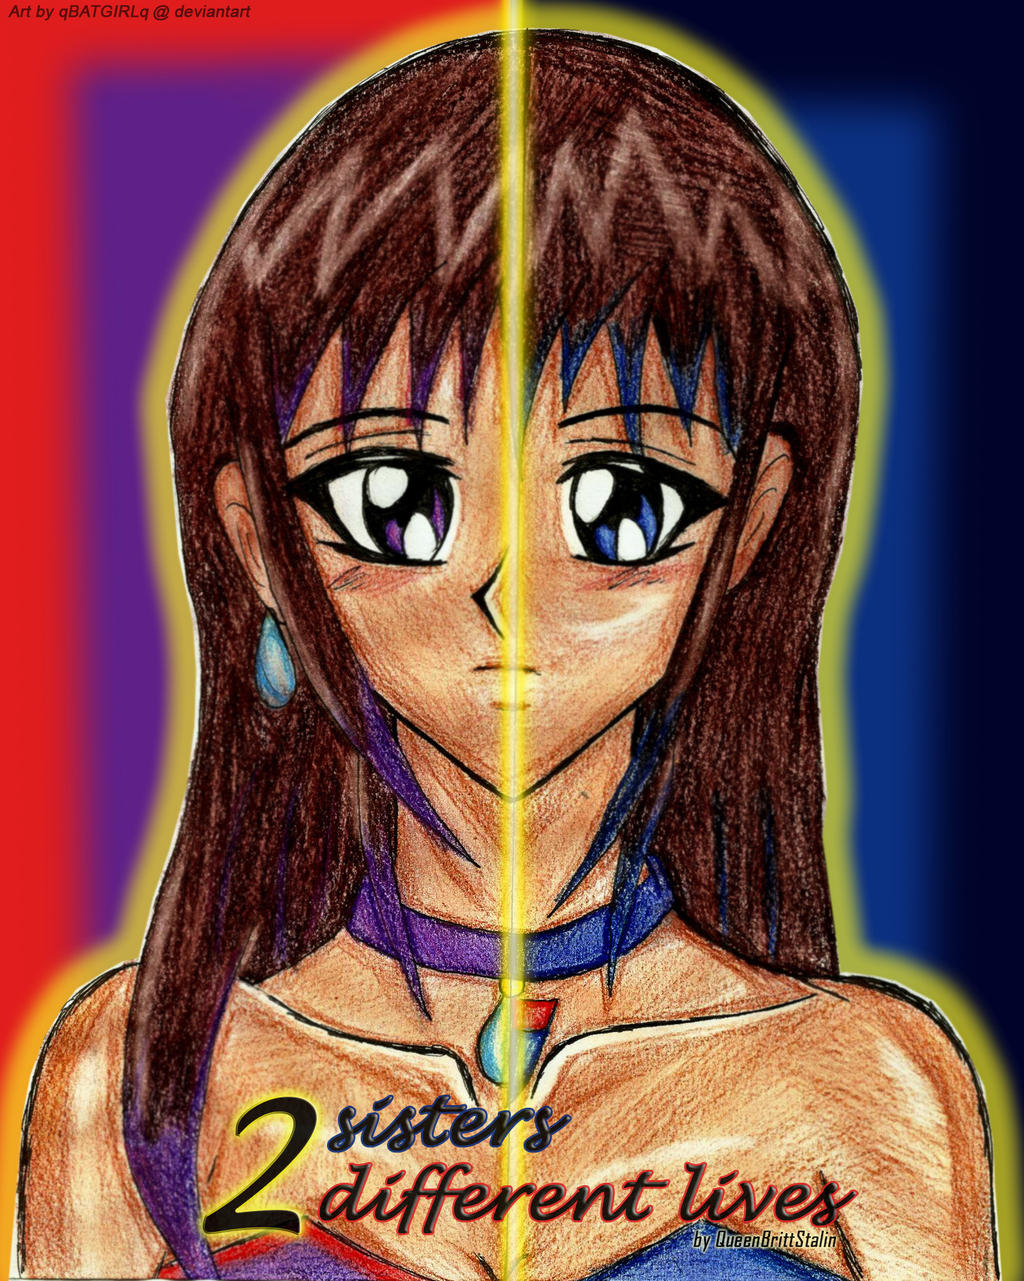 2 sisters, 2 different lives - cover - by qBATGIRLq